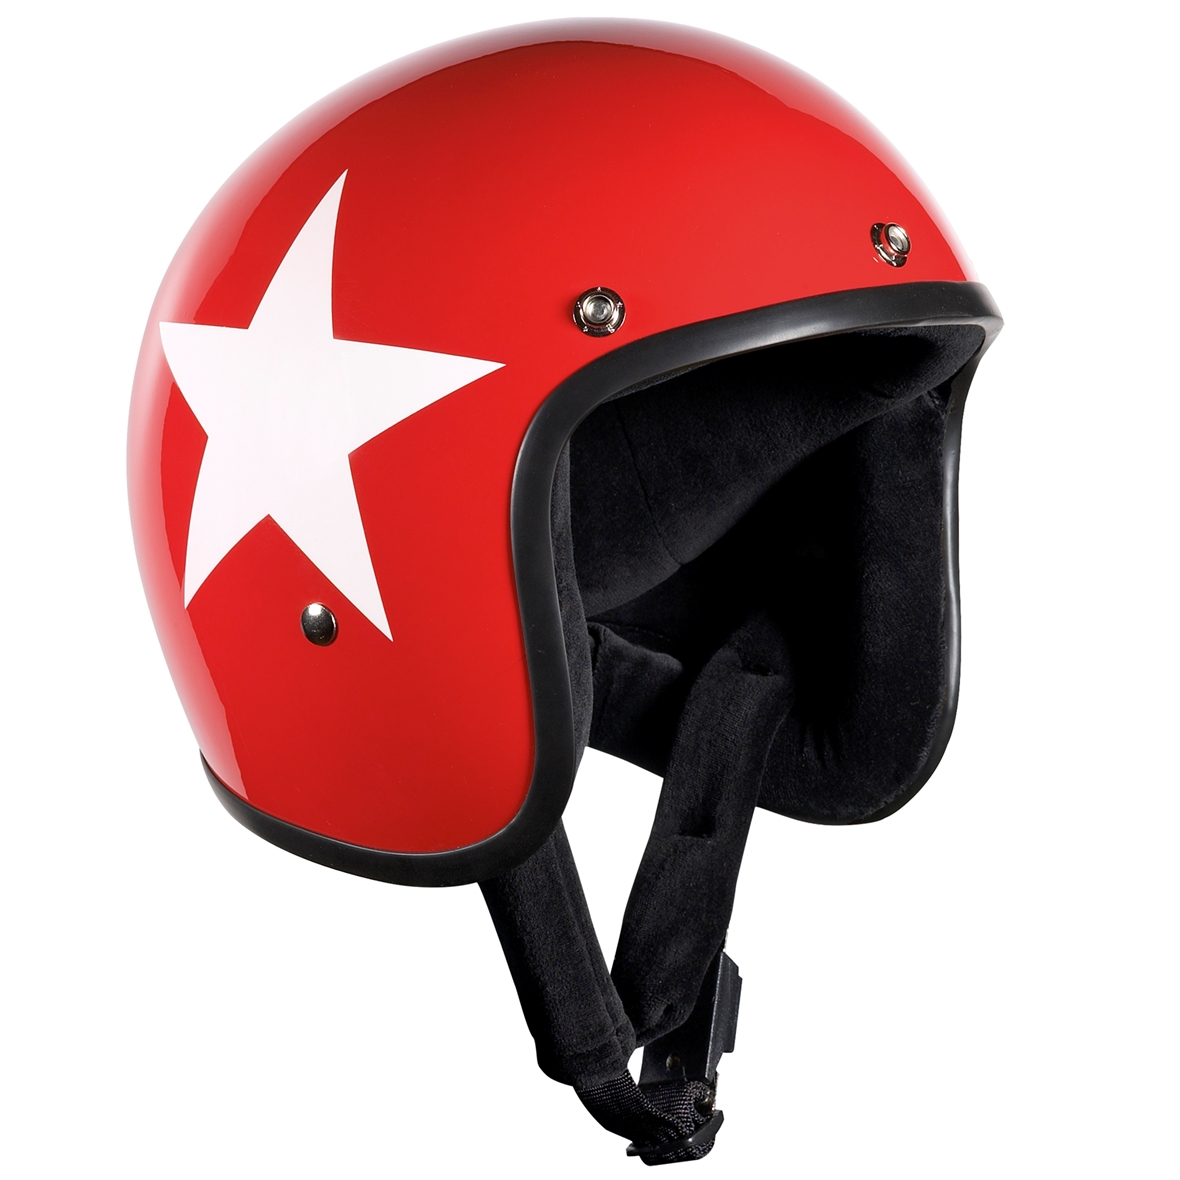 Product Image for 'Helmet BANDIT Jet Star with white starsTitle'